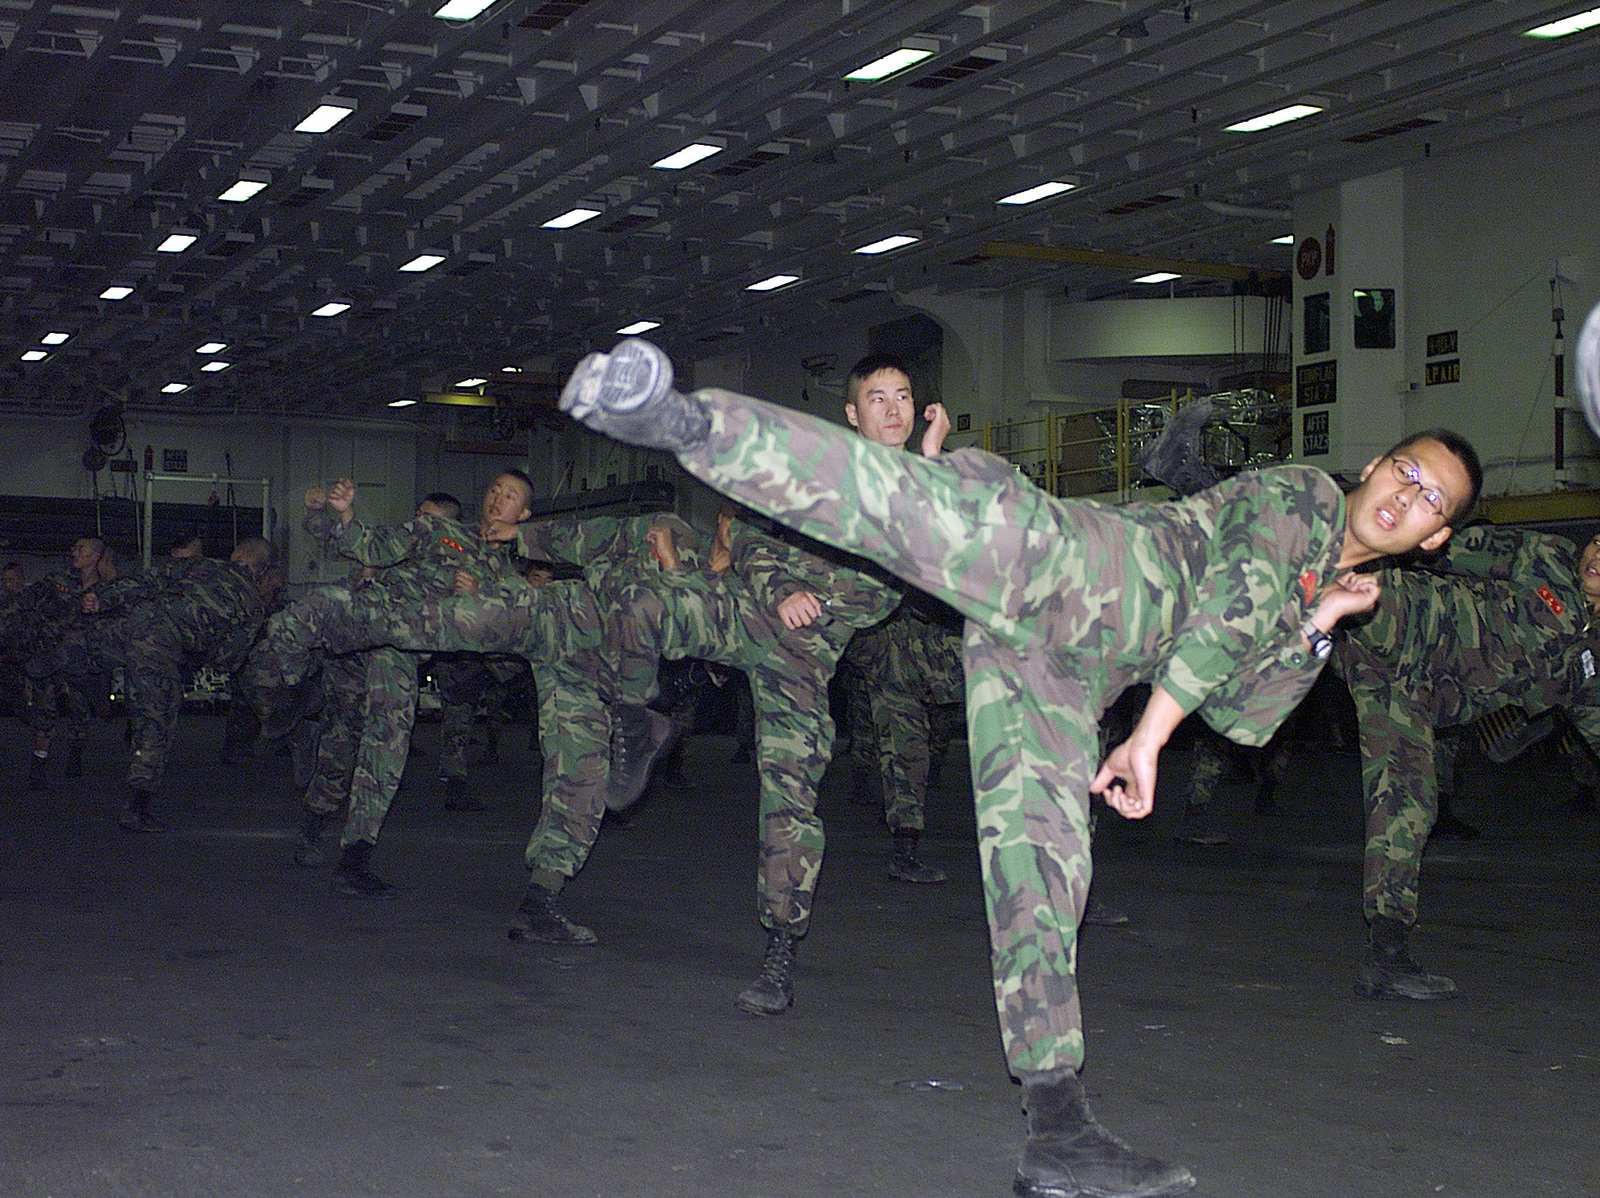 Republic of Korea (ROK) Marines perform stretching exercises before practicing hand to hand combat skills with the US Marines while off the coast of Pohang, Korea, aboard the USS Essex (LHD 2). During FOAL EAGLE 2000 exercise US Marines from the 31st Marine Expeditionary Unit (MEU), spent two months participating in various training operations on and off the coast of Okinawa, Japan, Sasebo, Japan, Pohang, Korea, and Hong Kong, China